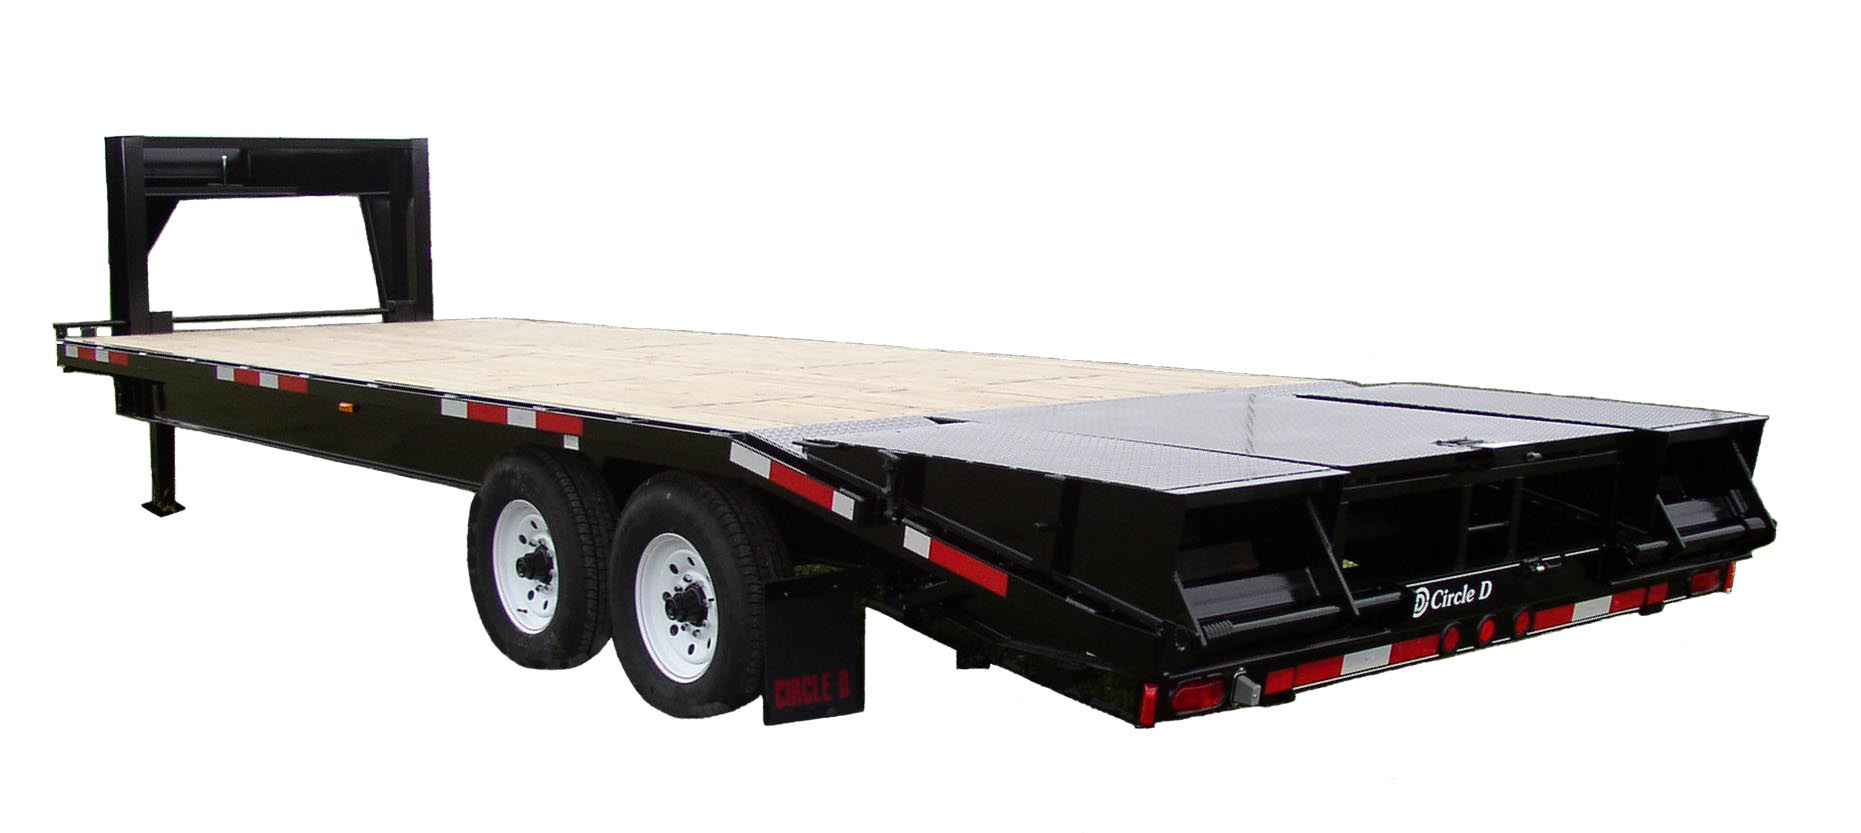 Circle D GN Flatbed Trailer